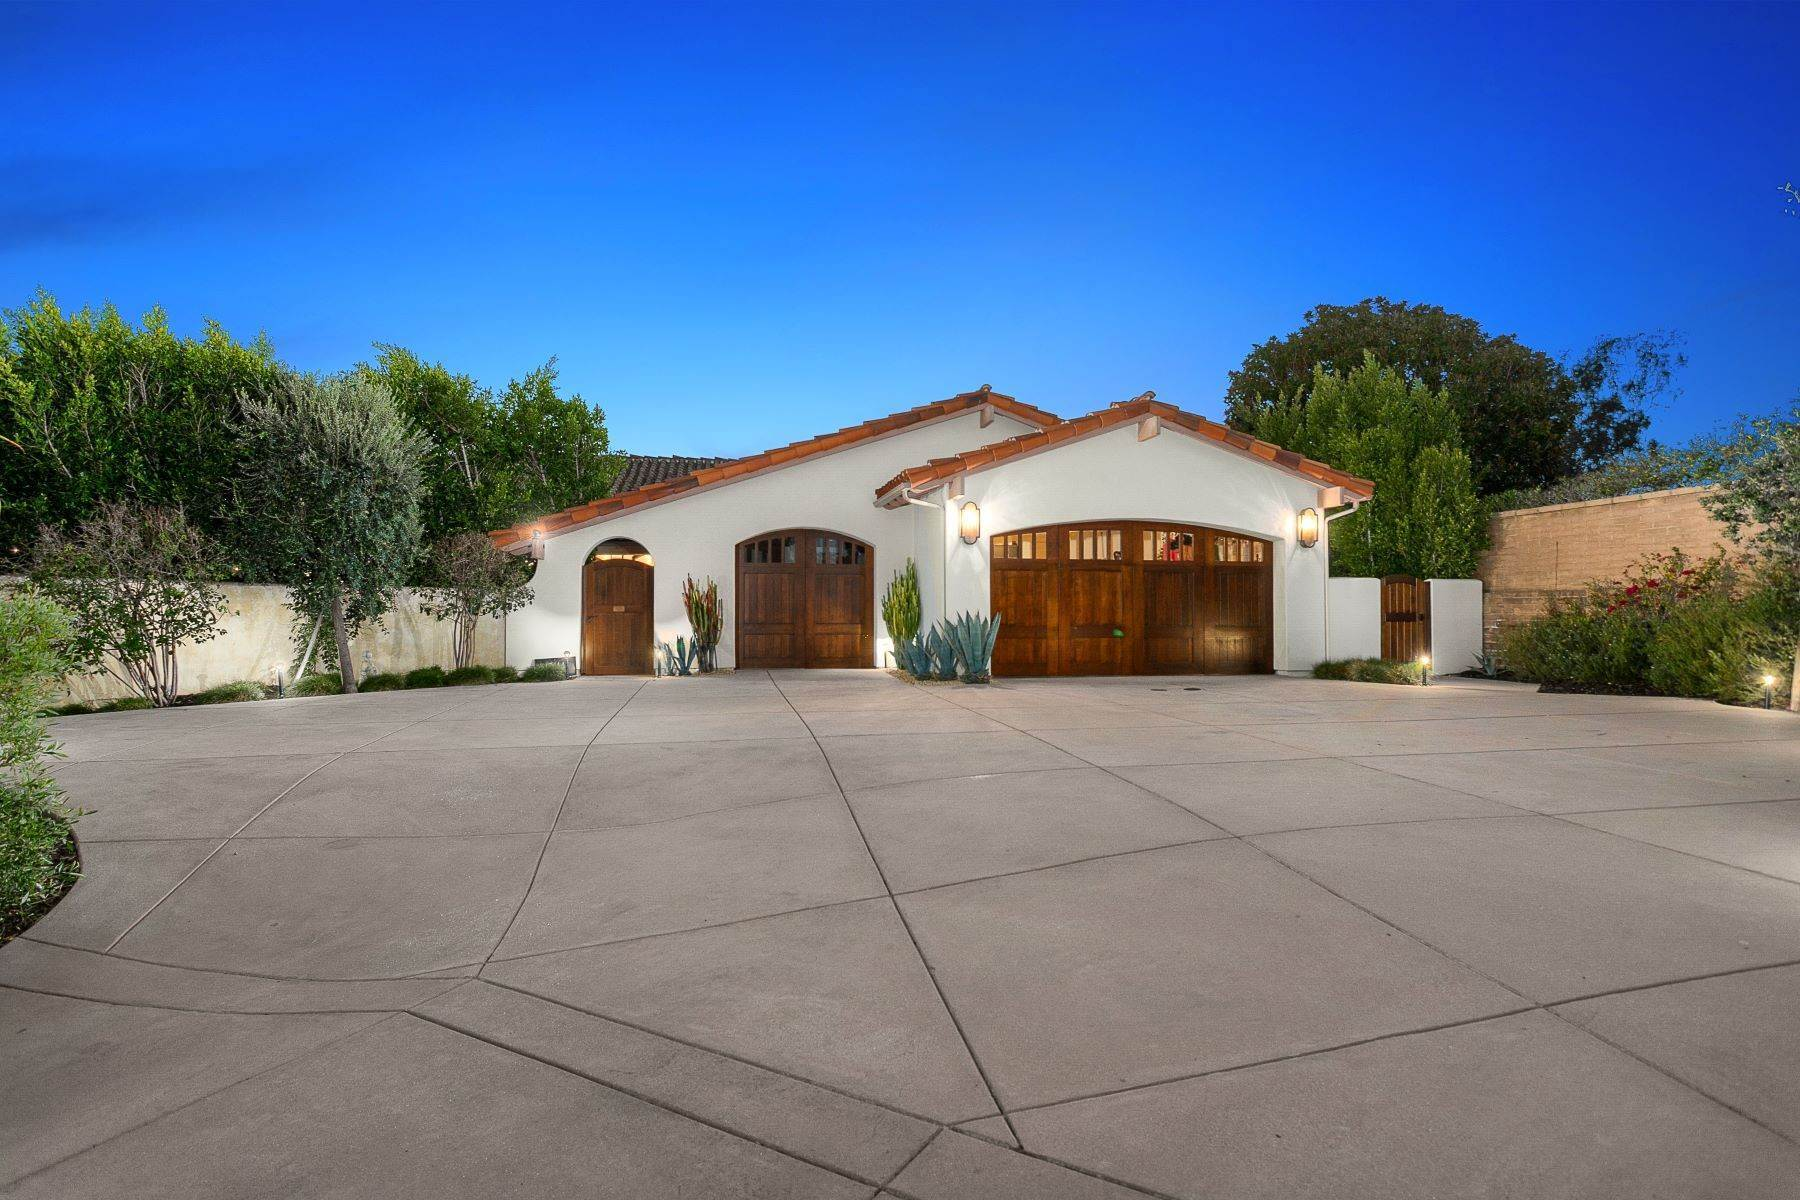 Single Family Homes for Sale at 17144 Via De La Valle, Rancho Santa Fe, CA 92091 17144 Via De La Valle Rancho Santa Fe, California 92091 United States